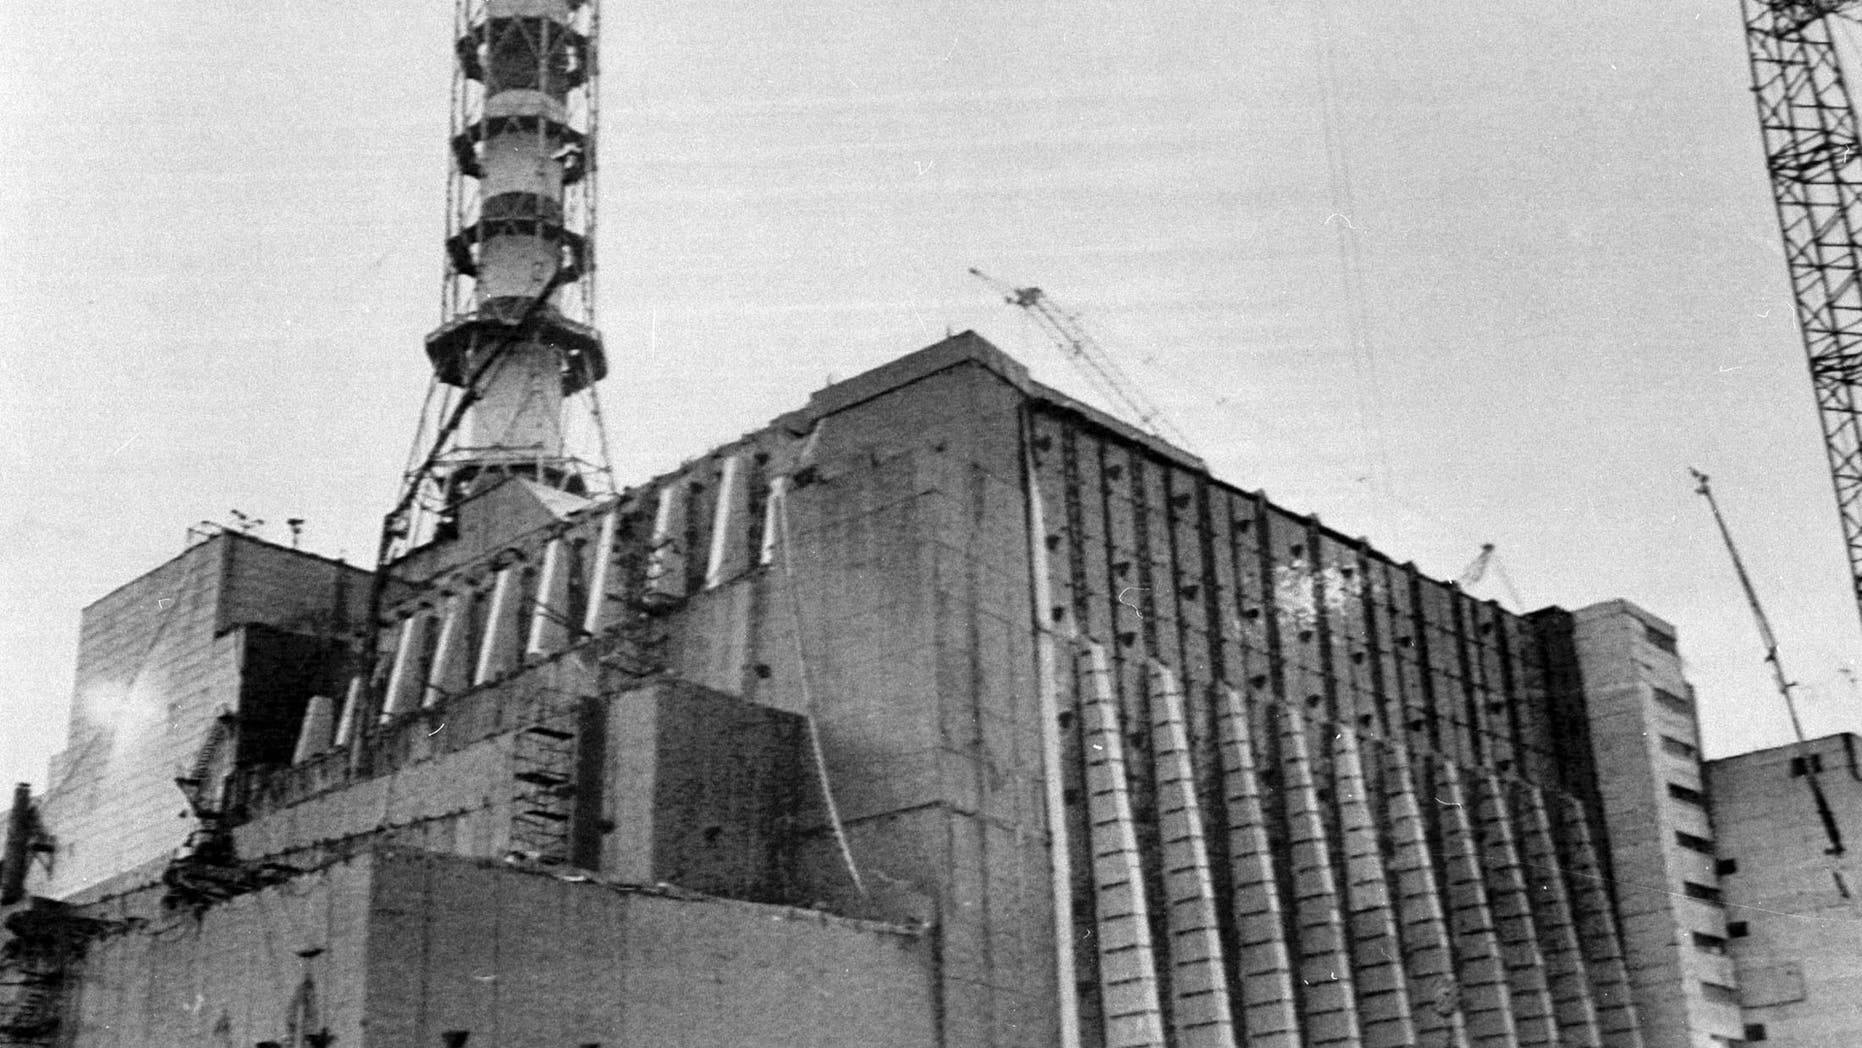 The number four reactor at the Chernobyl nuclear plant is seen in this December 2, 1986 file photo, after completion of work to entomb it in concrete following the explosion at the plant. (Reuters)